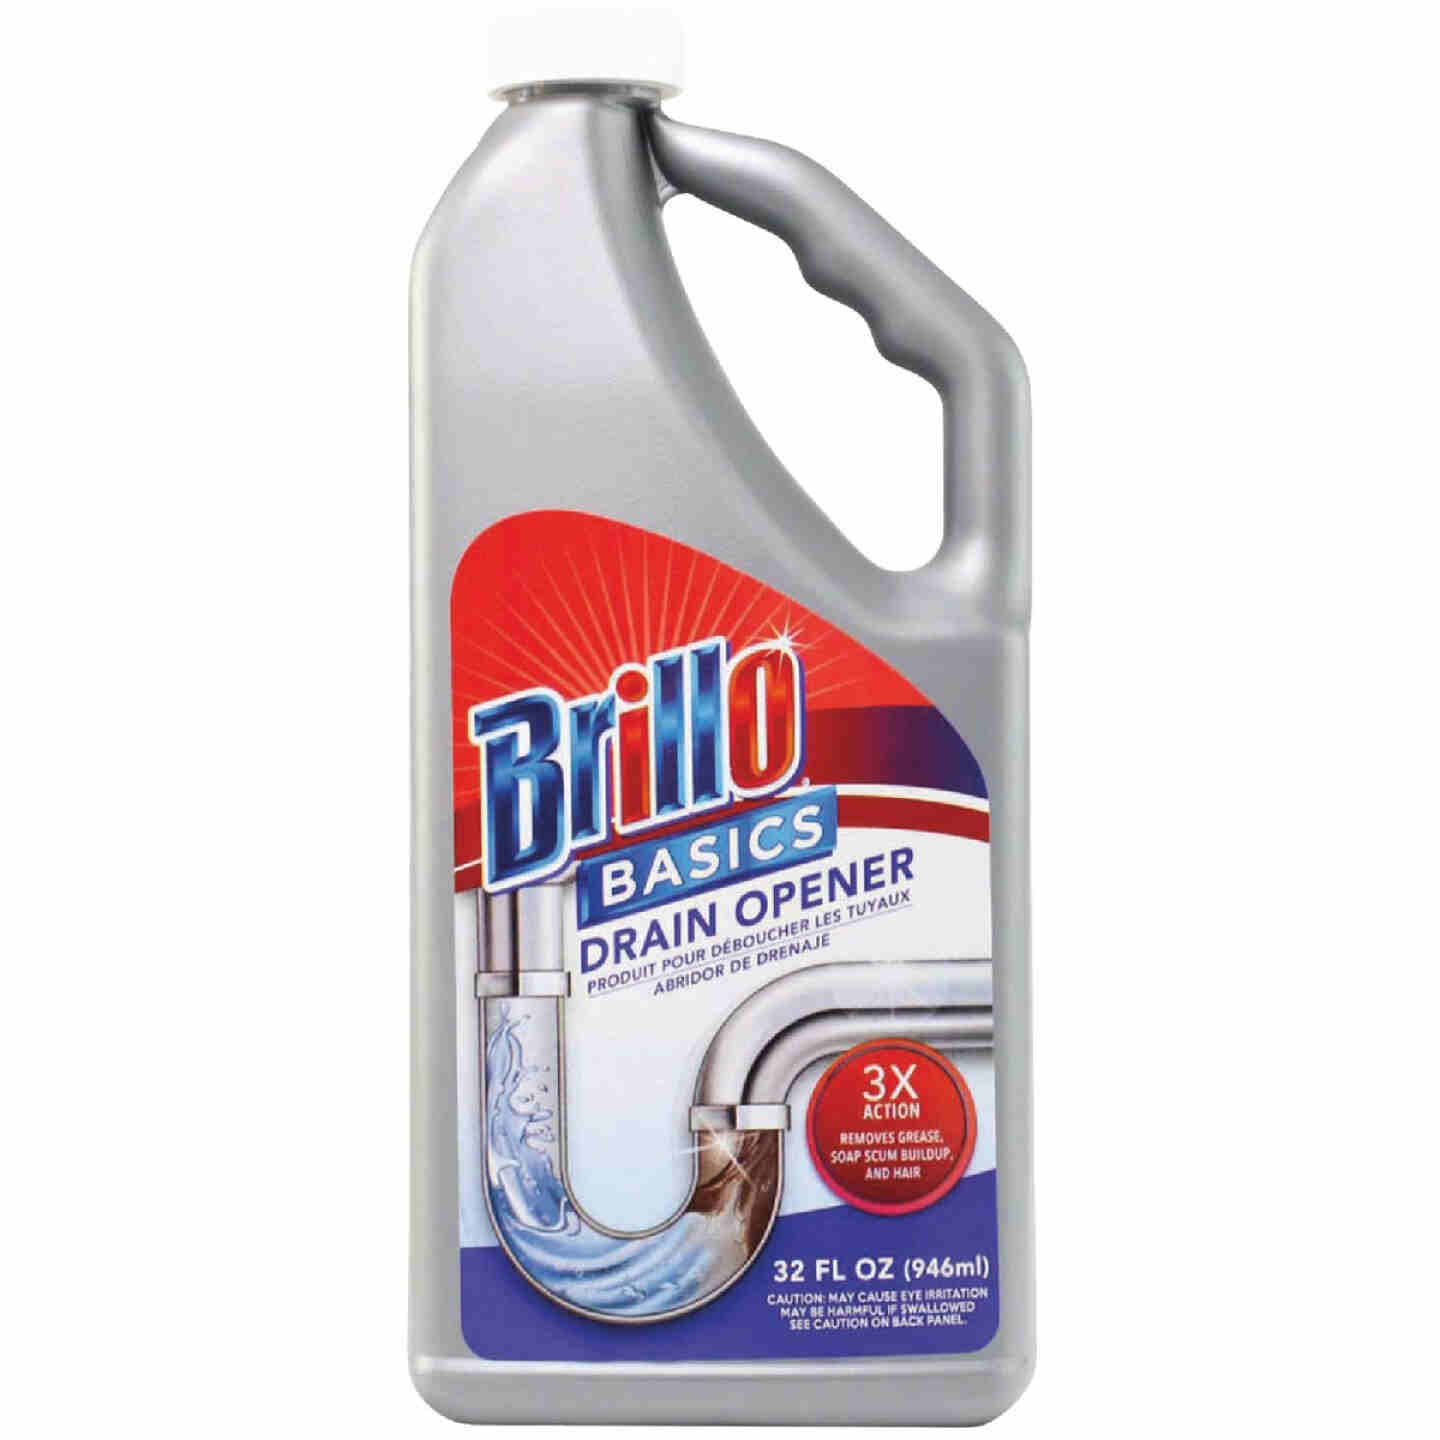 Brillo Basics 32 Oz. Liquid Drain Opener Image 1